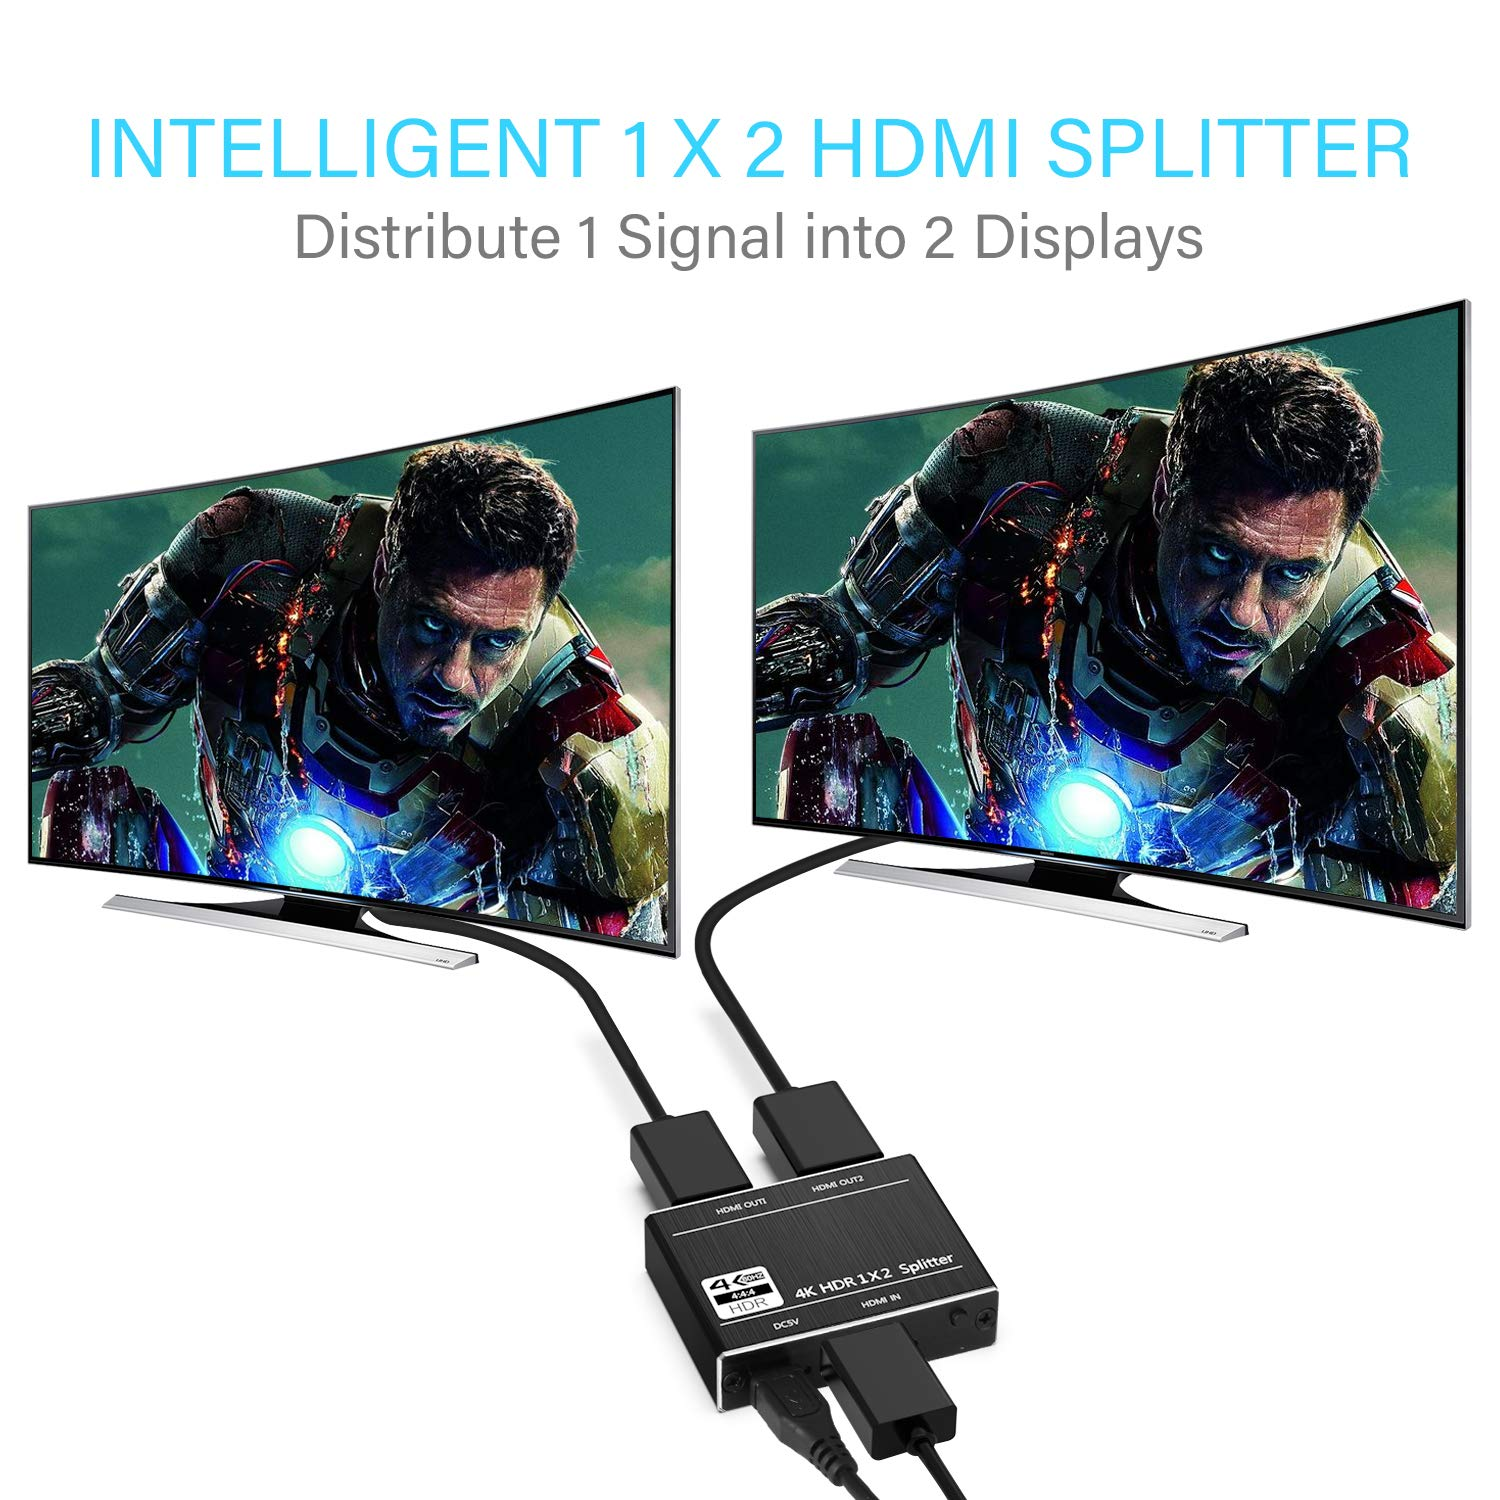 SOWTECH HDMI 2.0 Splitter Powered 1 in 2 Out HDMI Splitter 2160P 4Kx2K@60Hz RGB/HDCP 2.2 / 3D and HDR for Dual Monitor Duplicating Video and Audio by SOWTECH (Image #4)